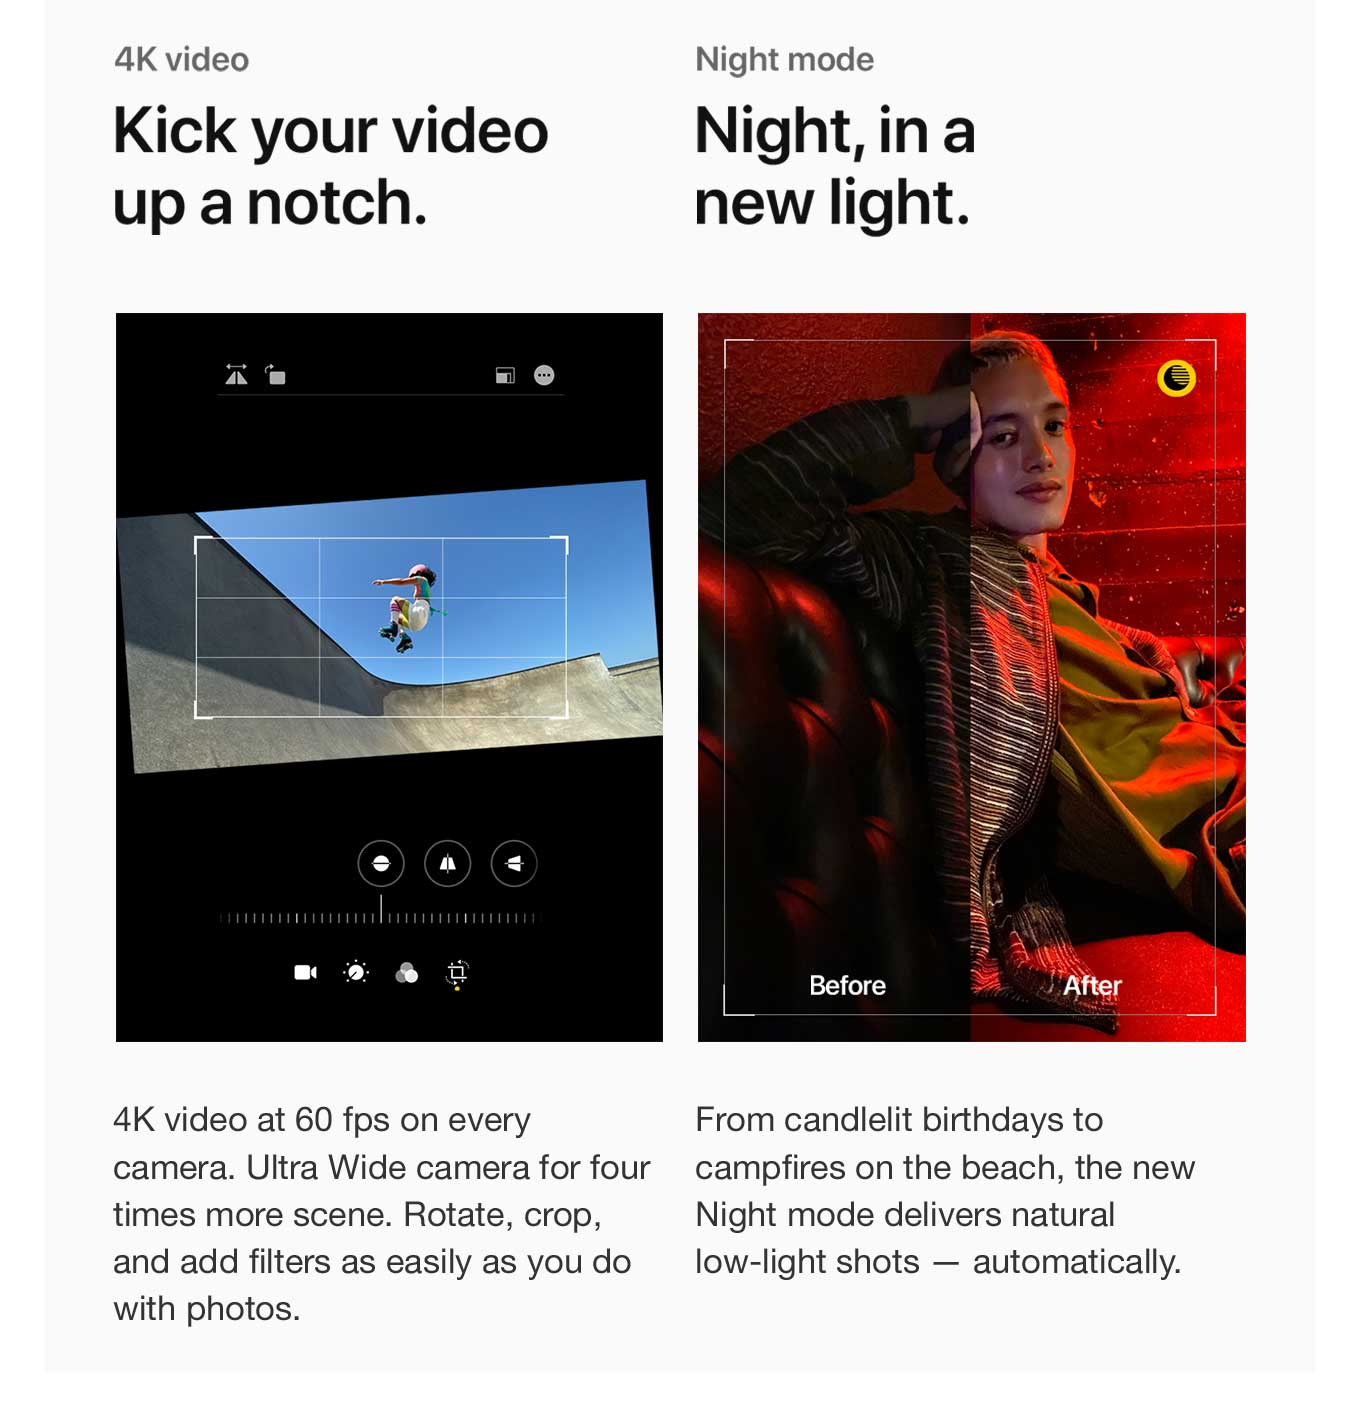 4K Video. Kick your video up a notch. Night mode. Night, in a new light.